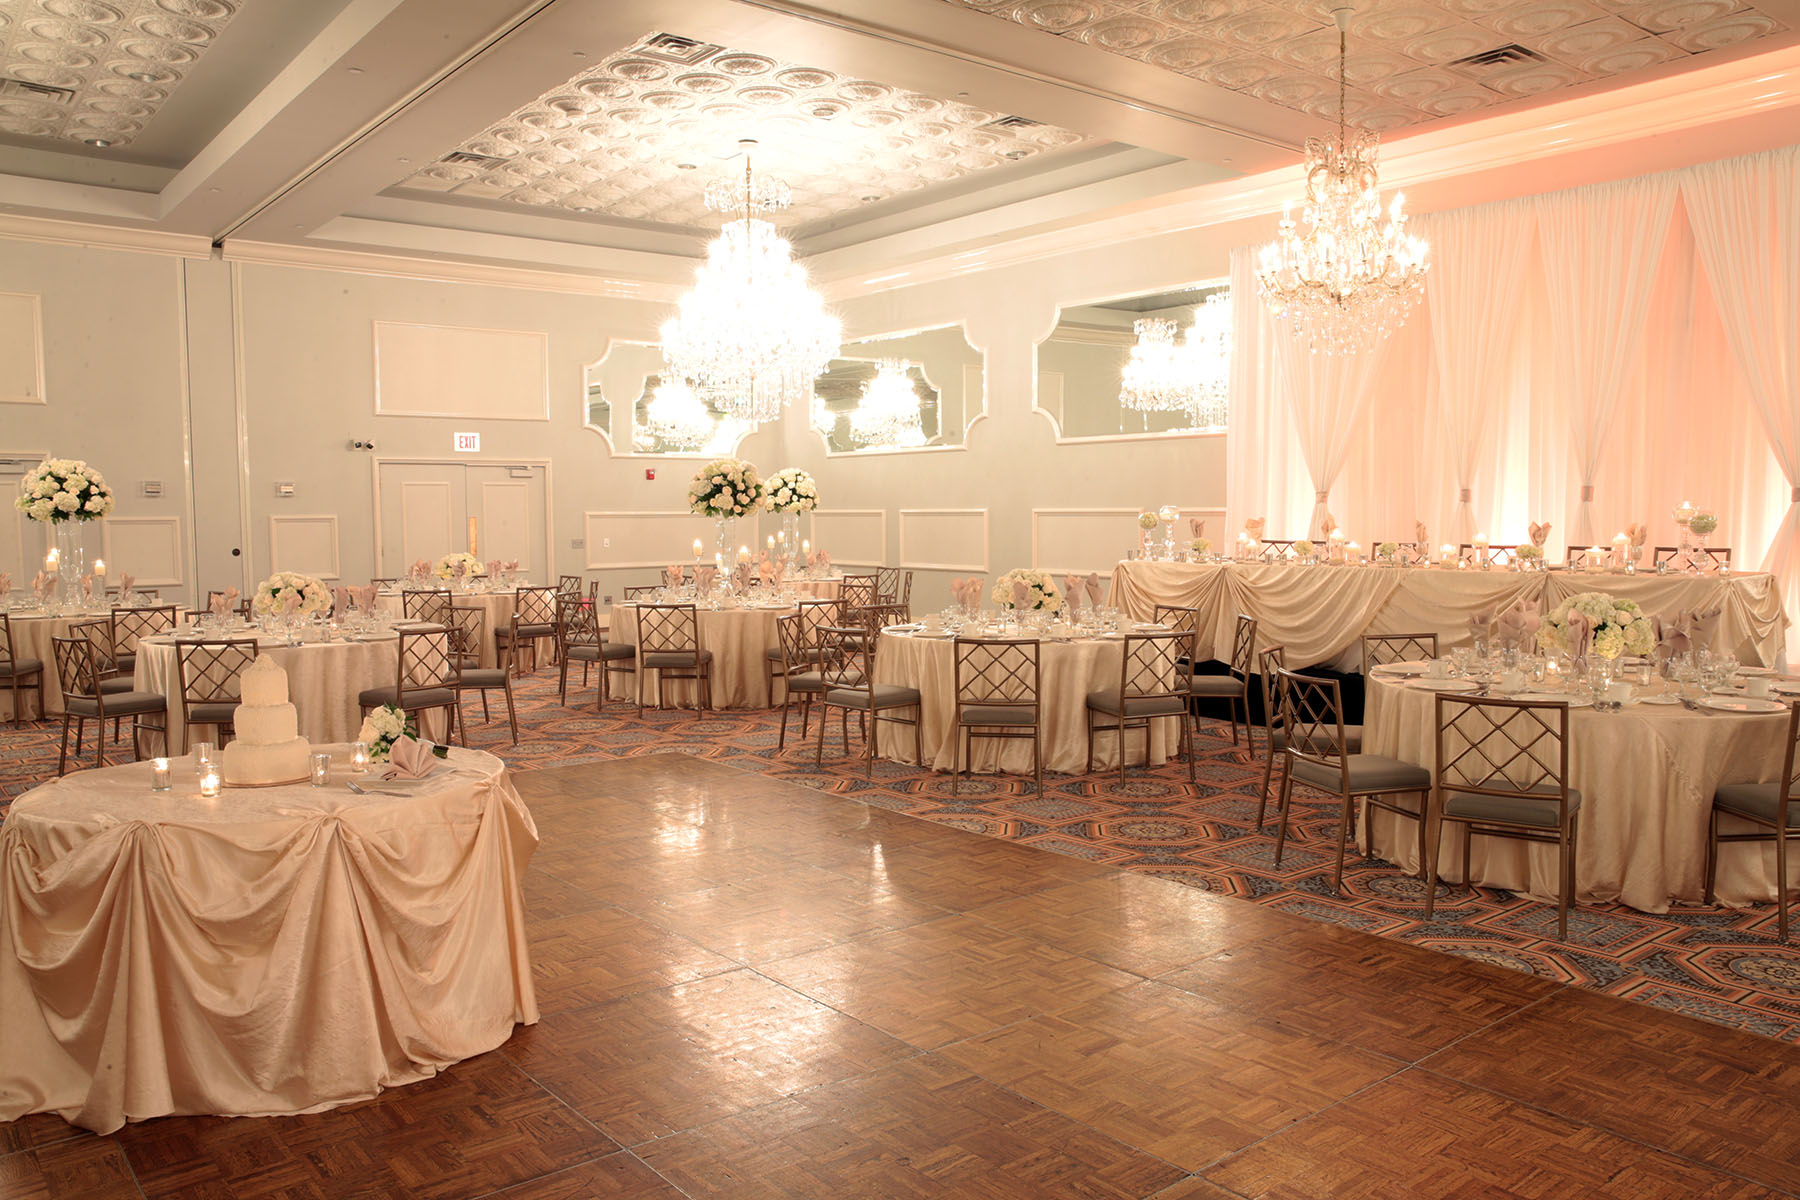 Oak Ballroom event space at Drury Lane Theatre & Convention Center in New York City, NYC, NY/NJ Area